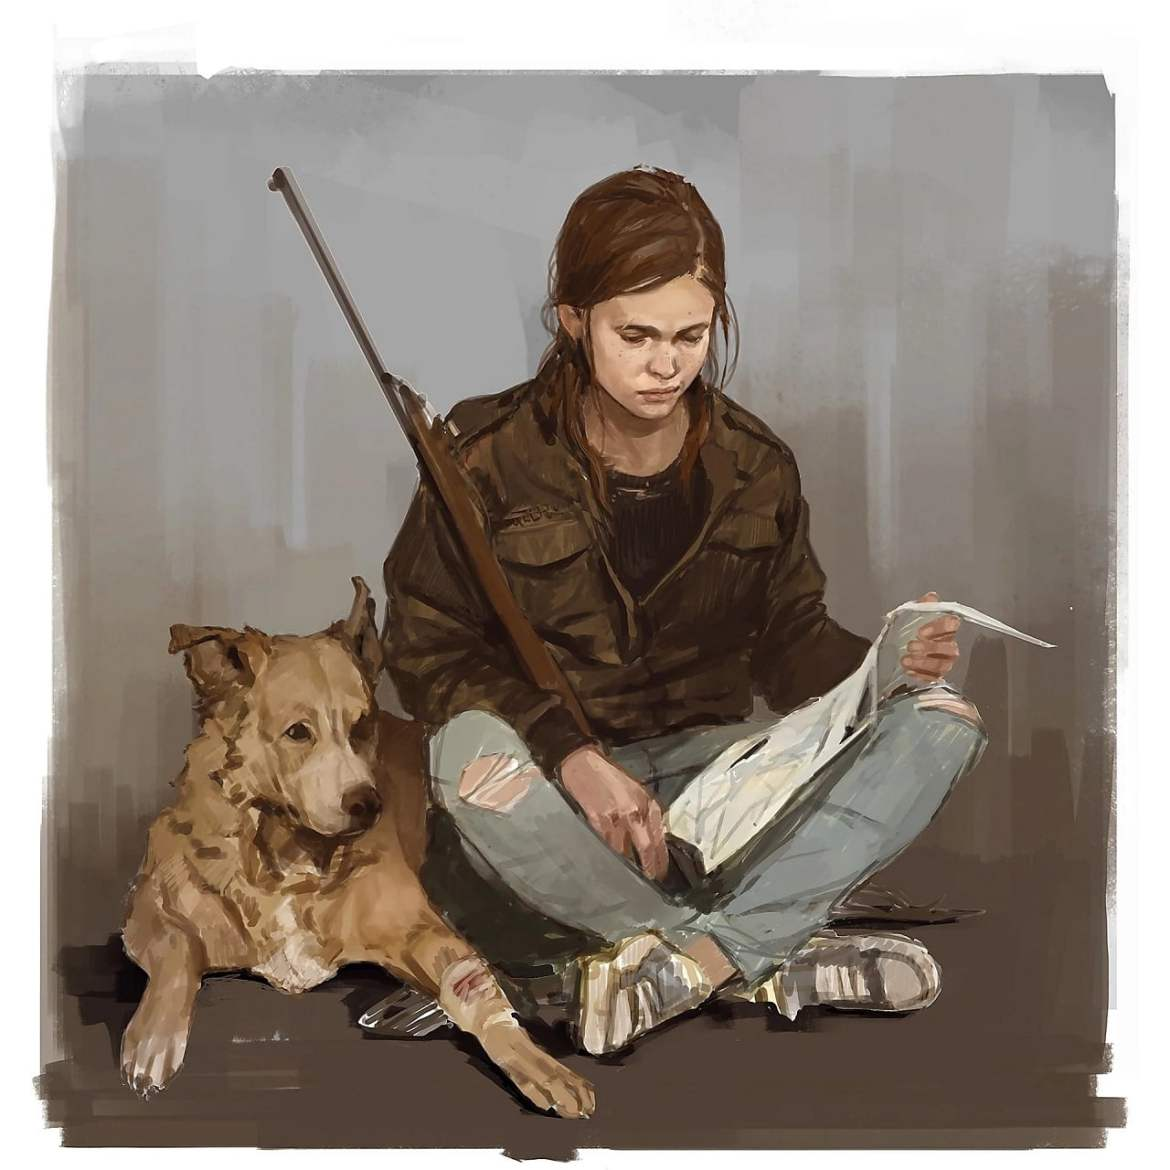 Arte conceituais The Last of Us 2 mostram mais de Ellie 1